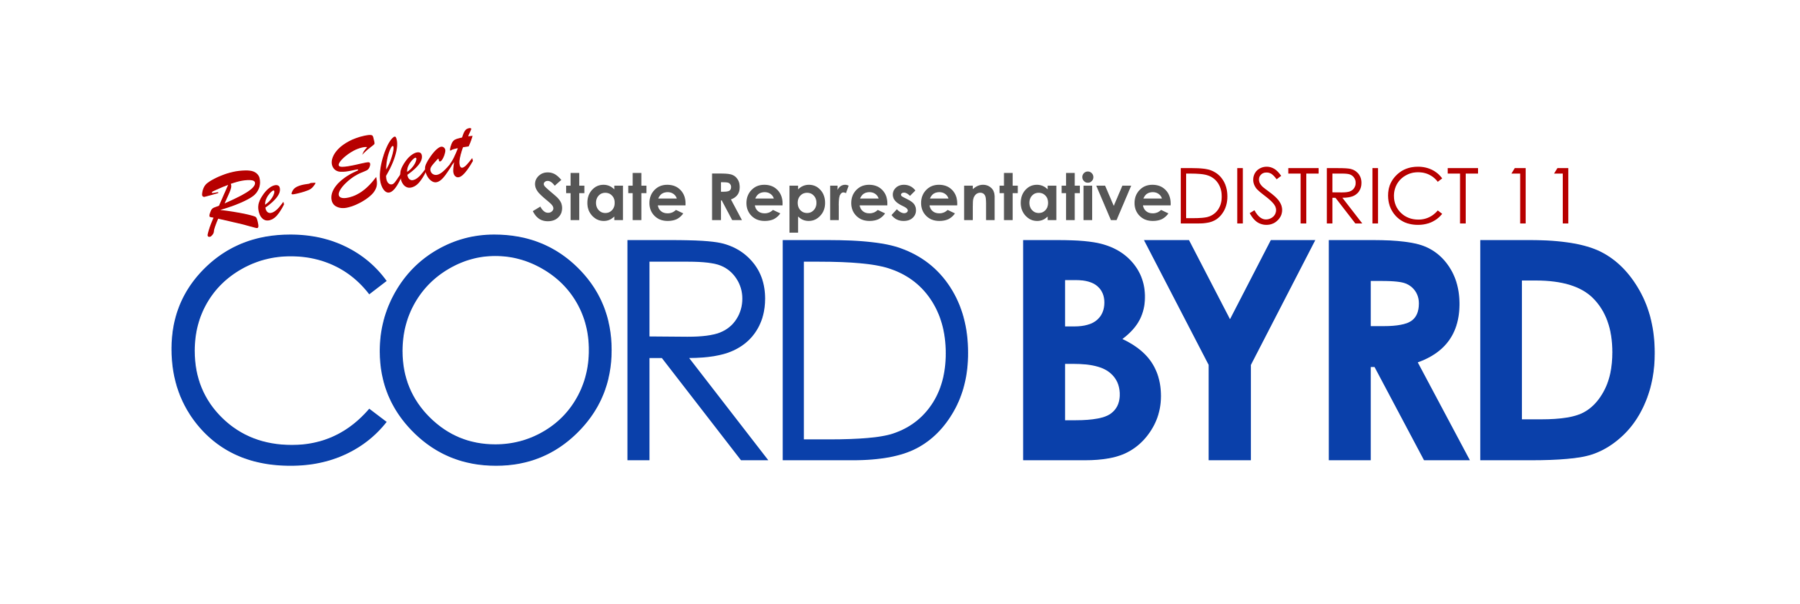 Cord Byrd for State House: Cord Byrd for State House